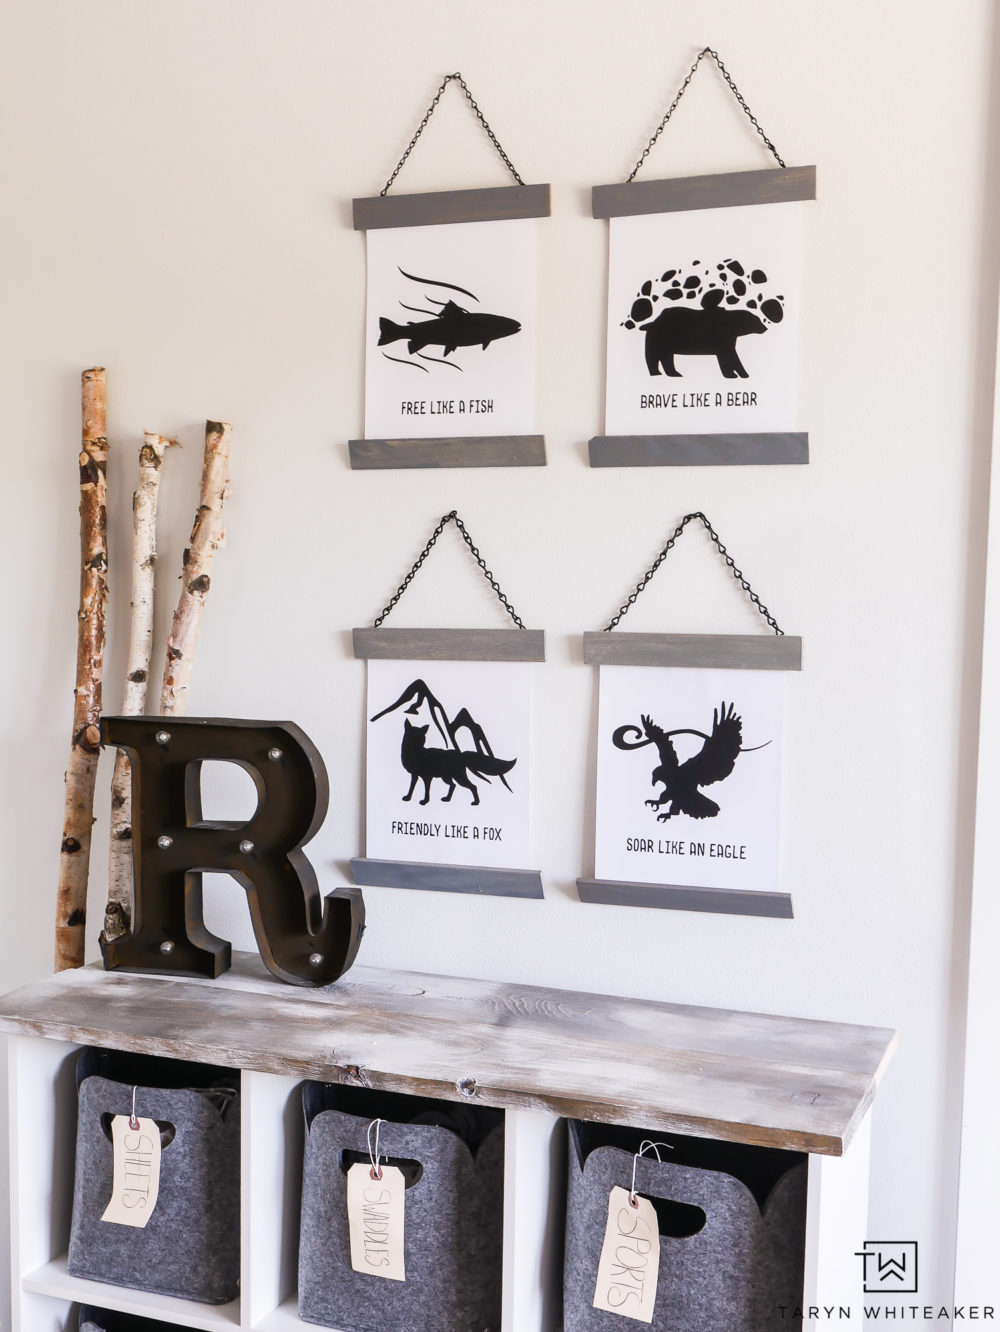 FREE Wilderness prints for your kid's room! Love these animal prints, great for a mountain inspired bedroom.